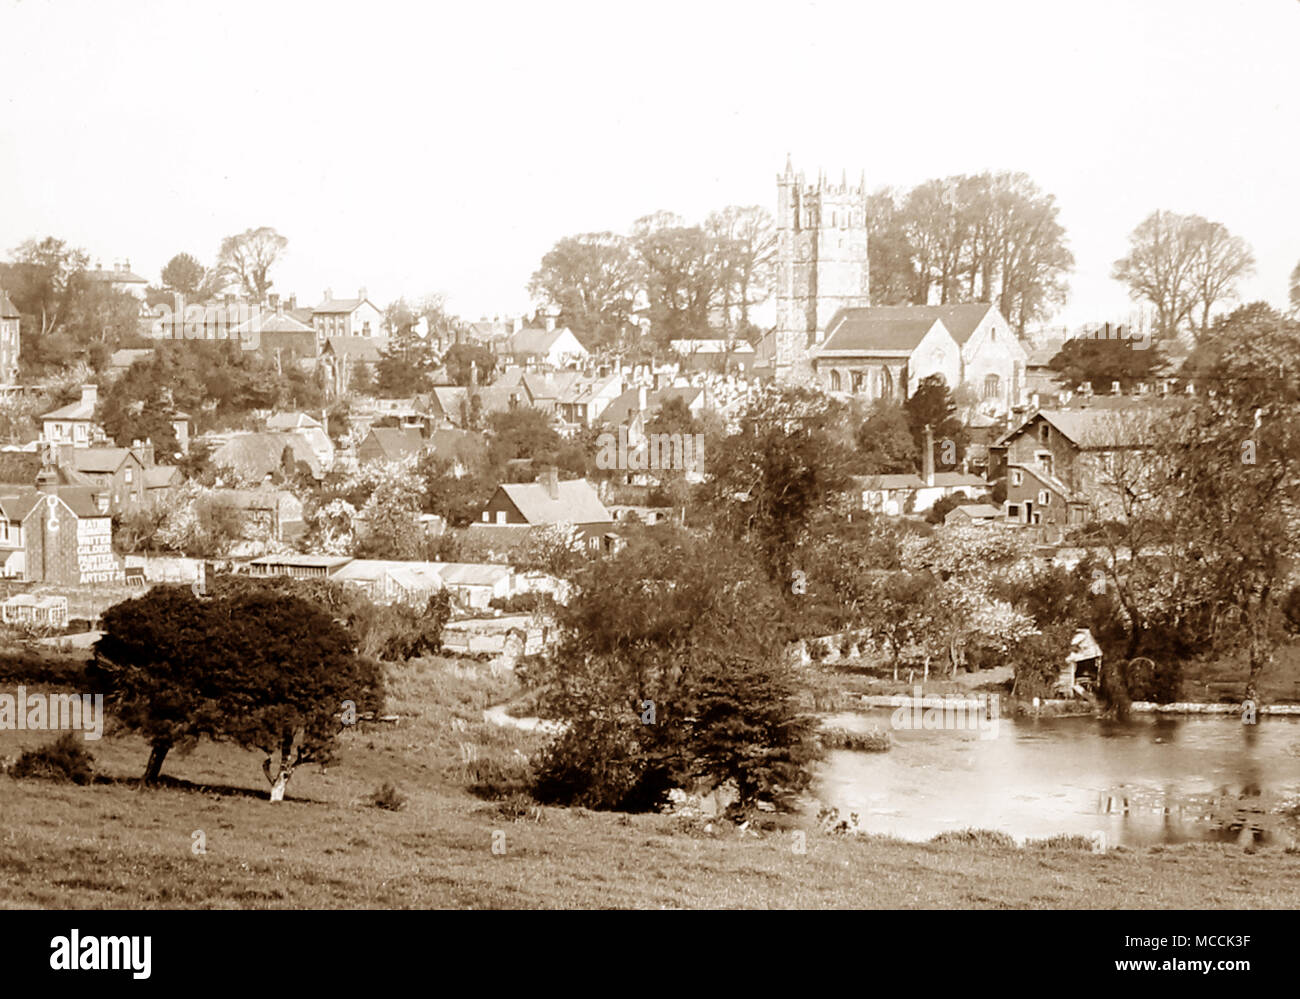 Carisbrooke Village, isle of Wight, early 1900s - Stock Image